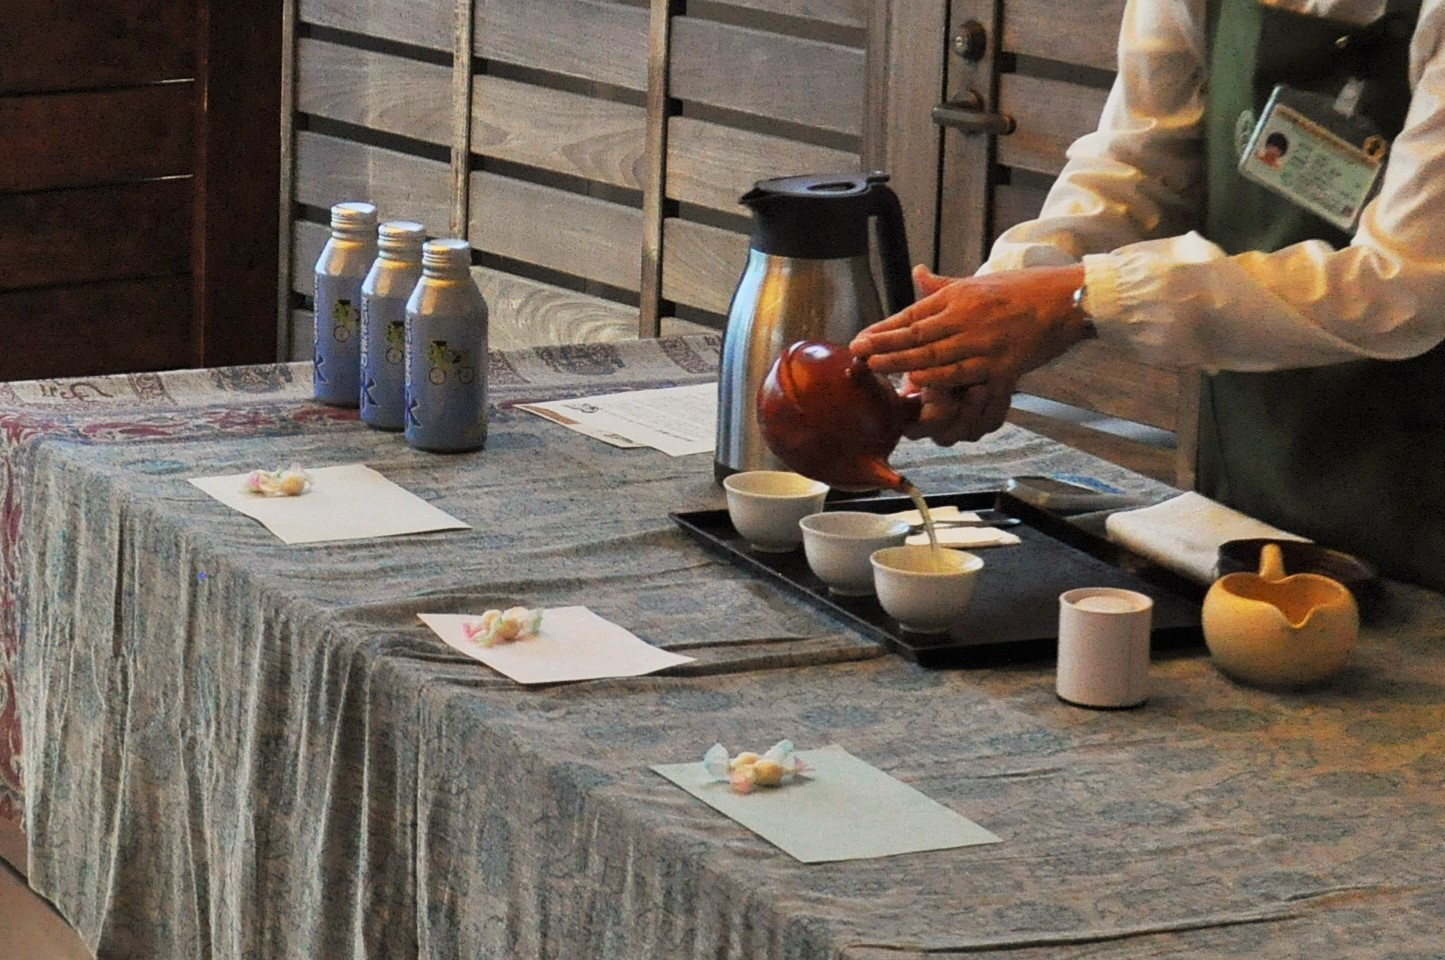 Sencha (green tea) service